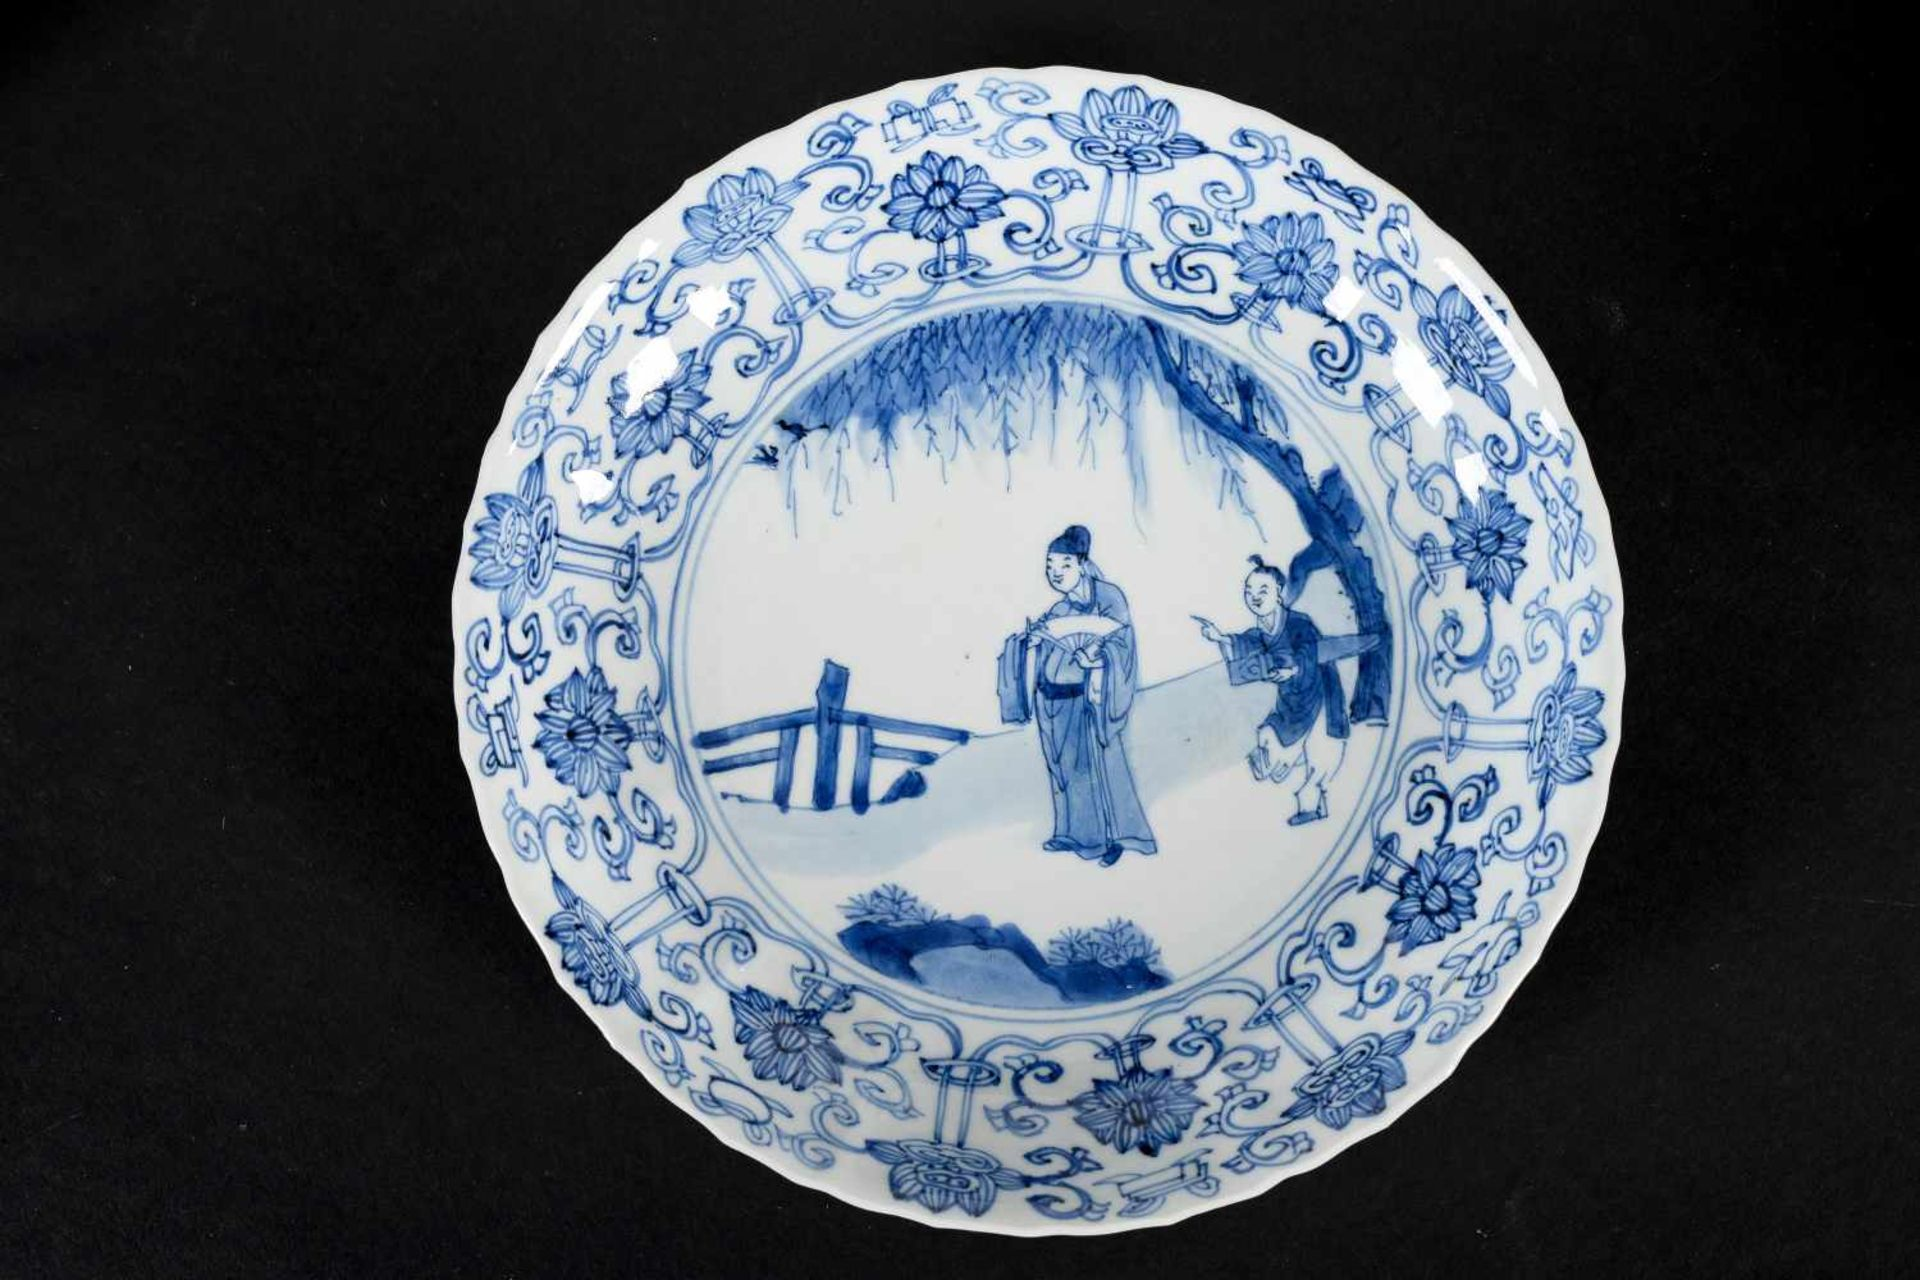 A lobed blue and white porcelain deep dish with scalloped rim, decorated with a dignitary and - Bild 4 aus 4